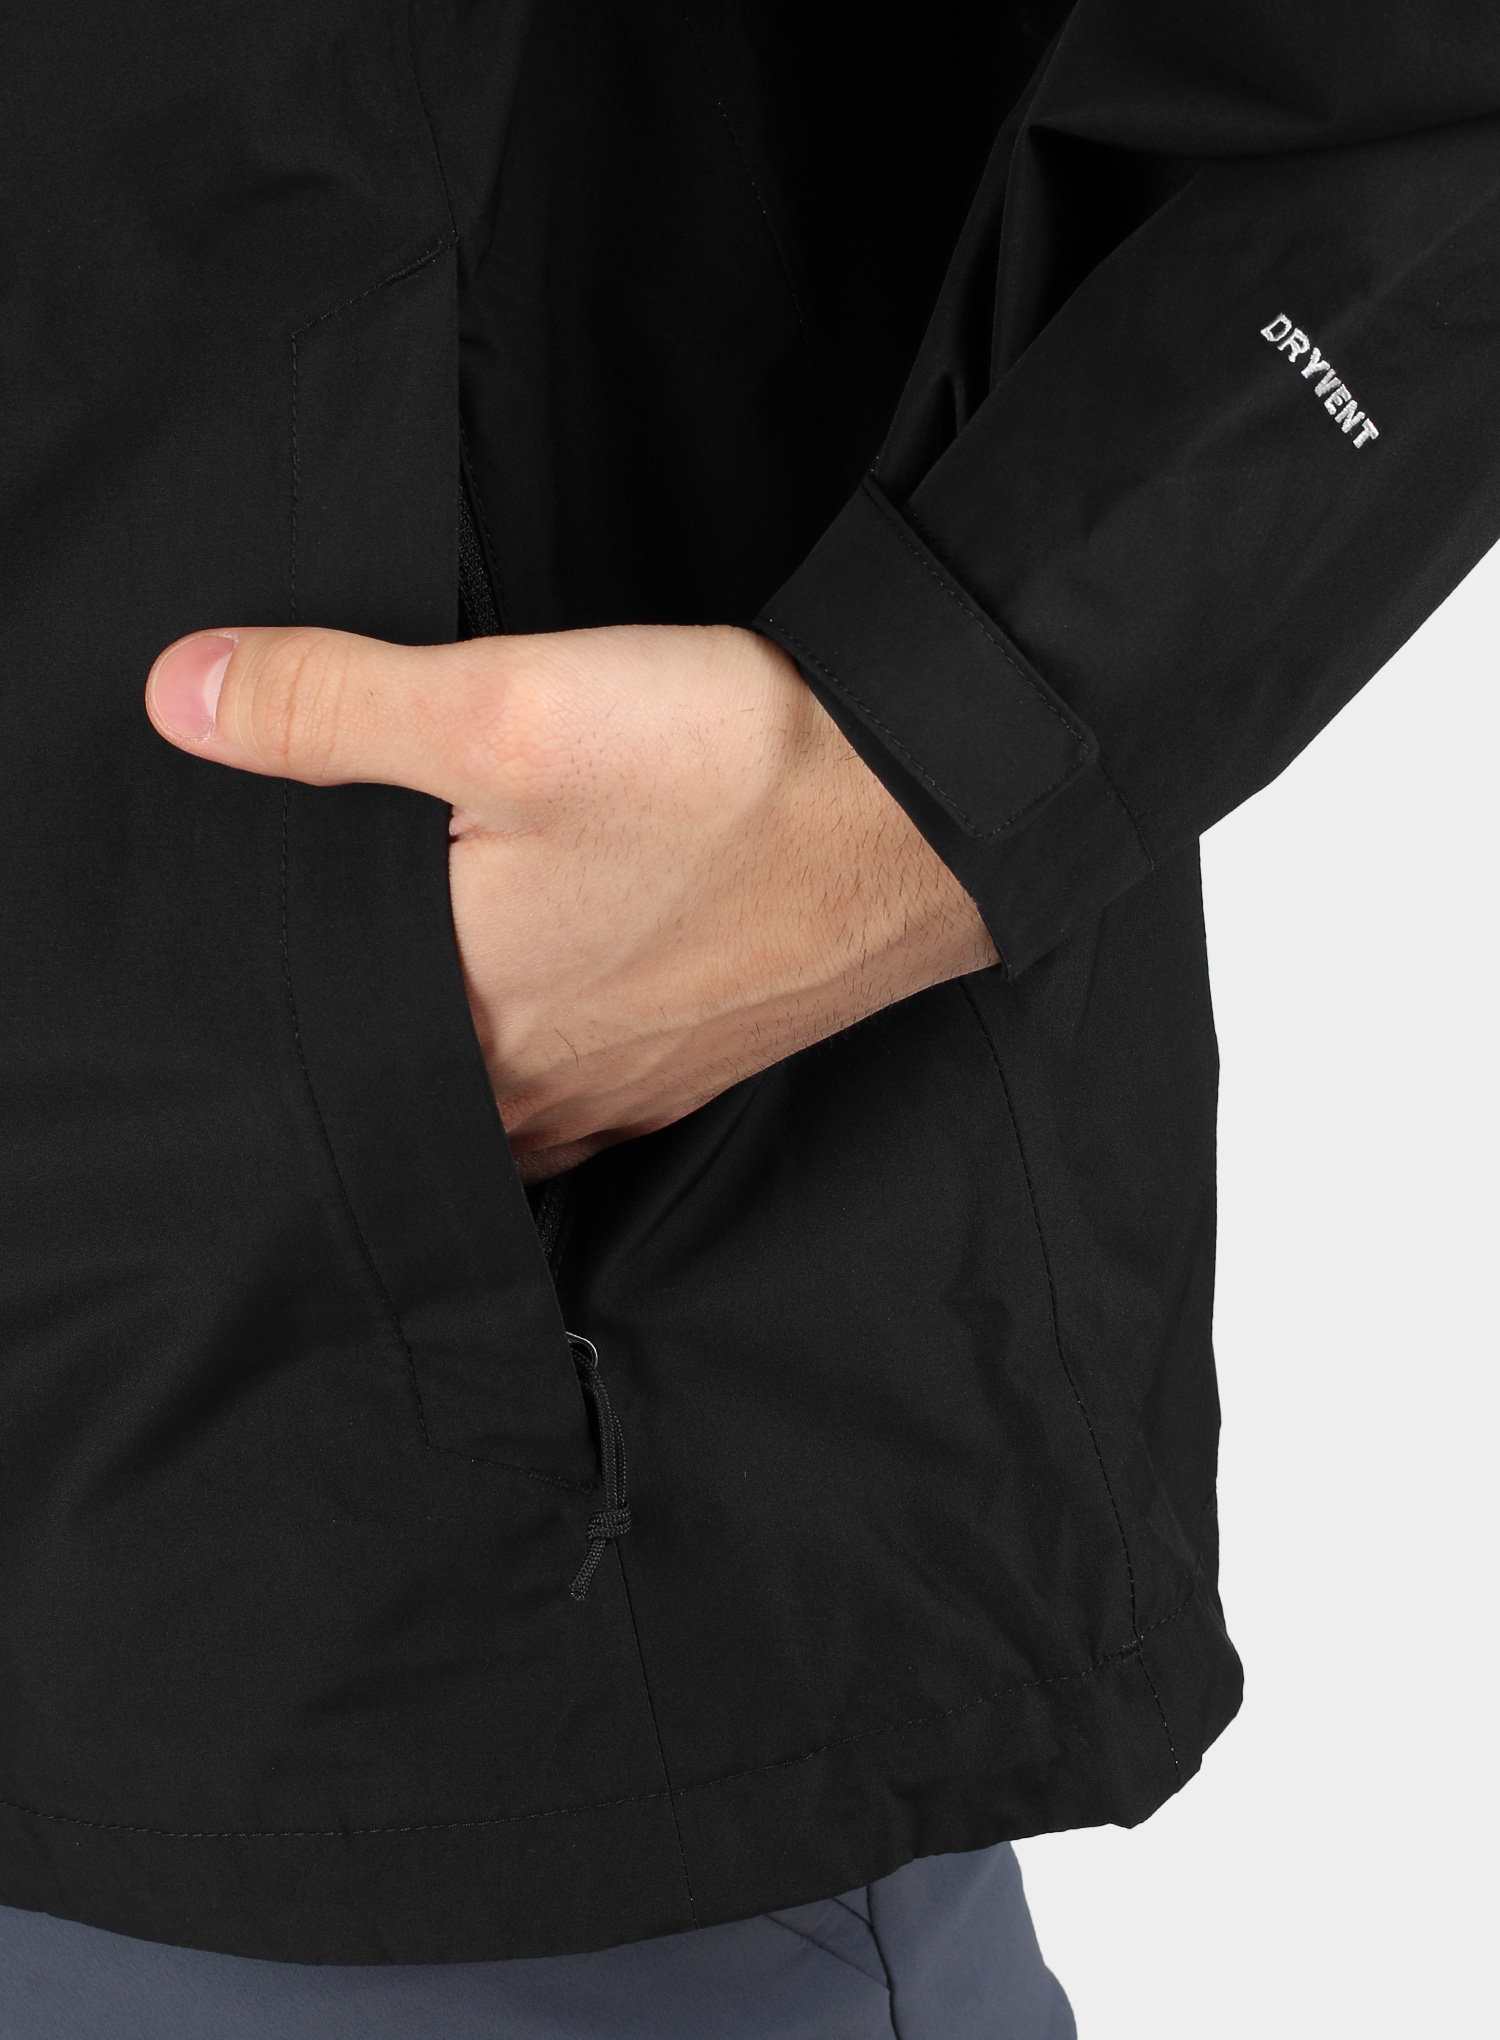 Kurtka The North Face Sangro Jacket - black - zdjęcie nr. 14